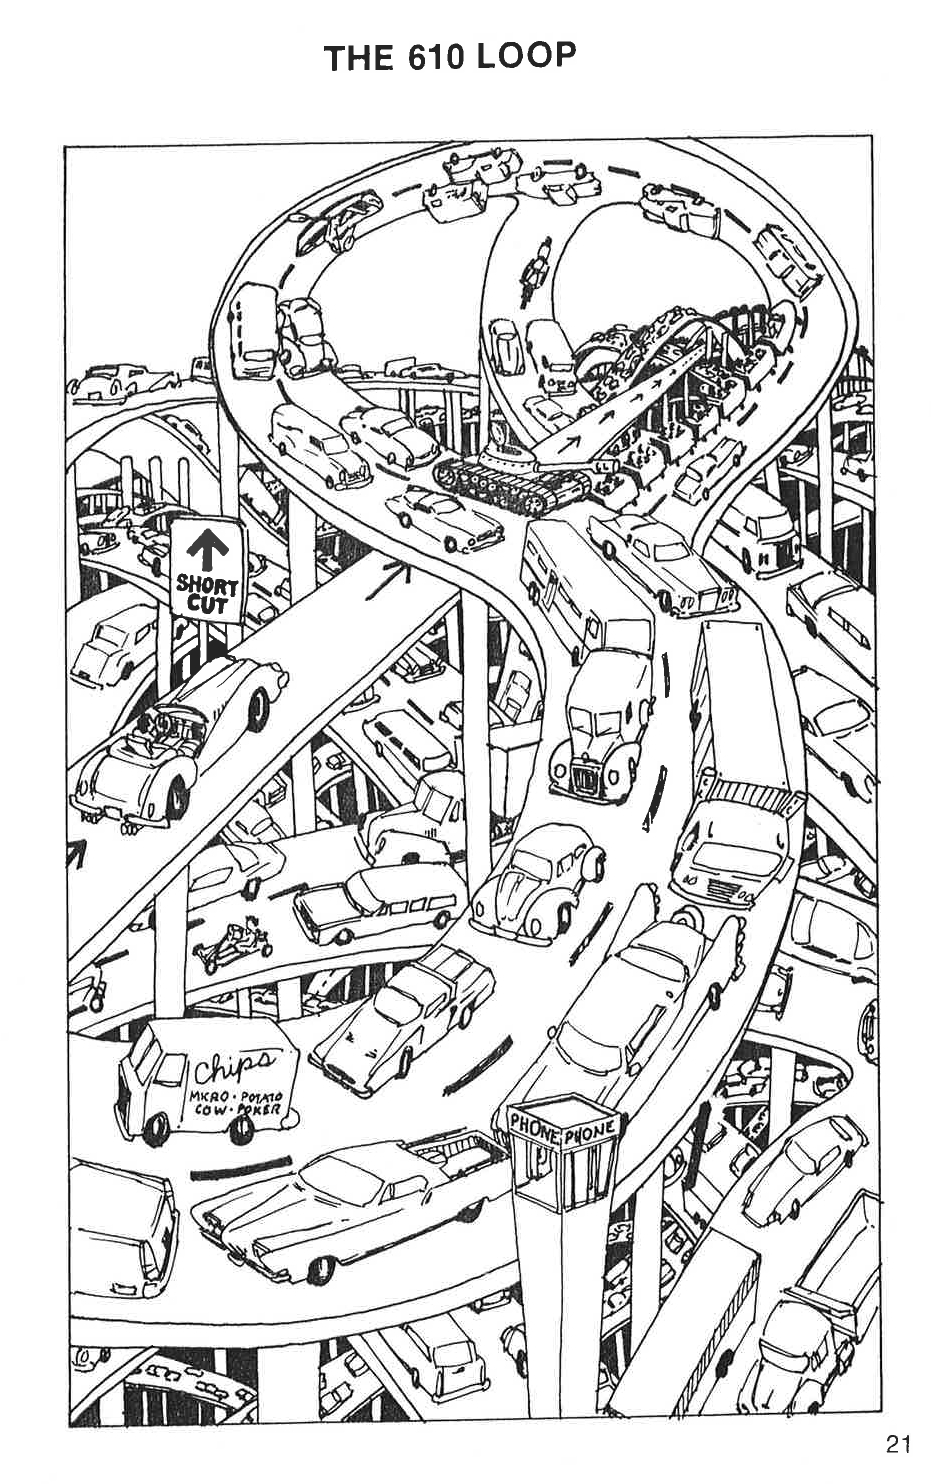 Traffic Panic: A Brief History of Farce, Frustration, and ...